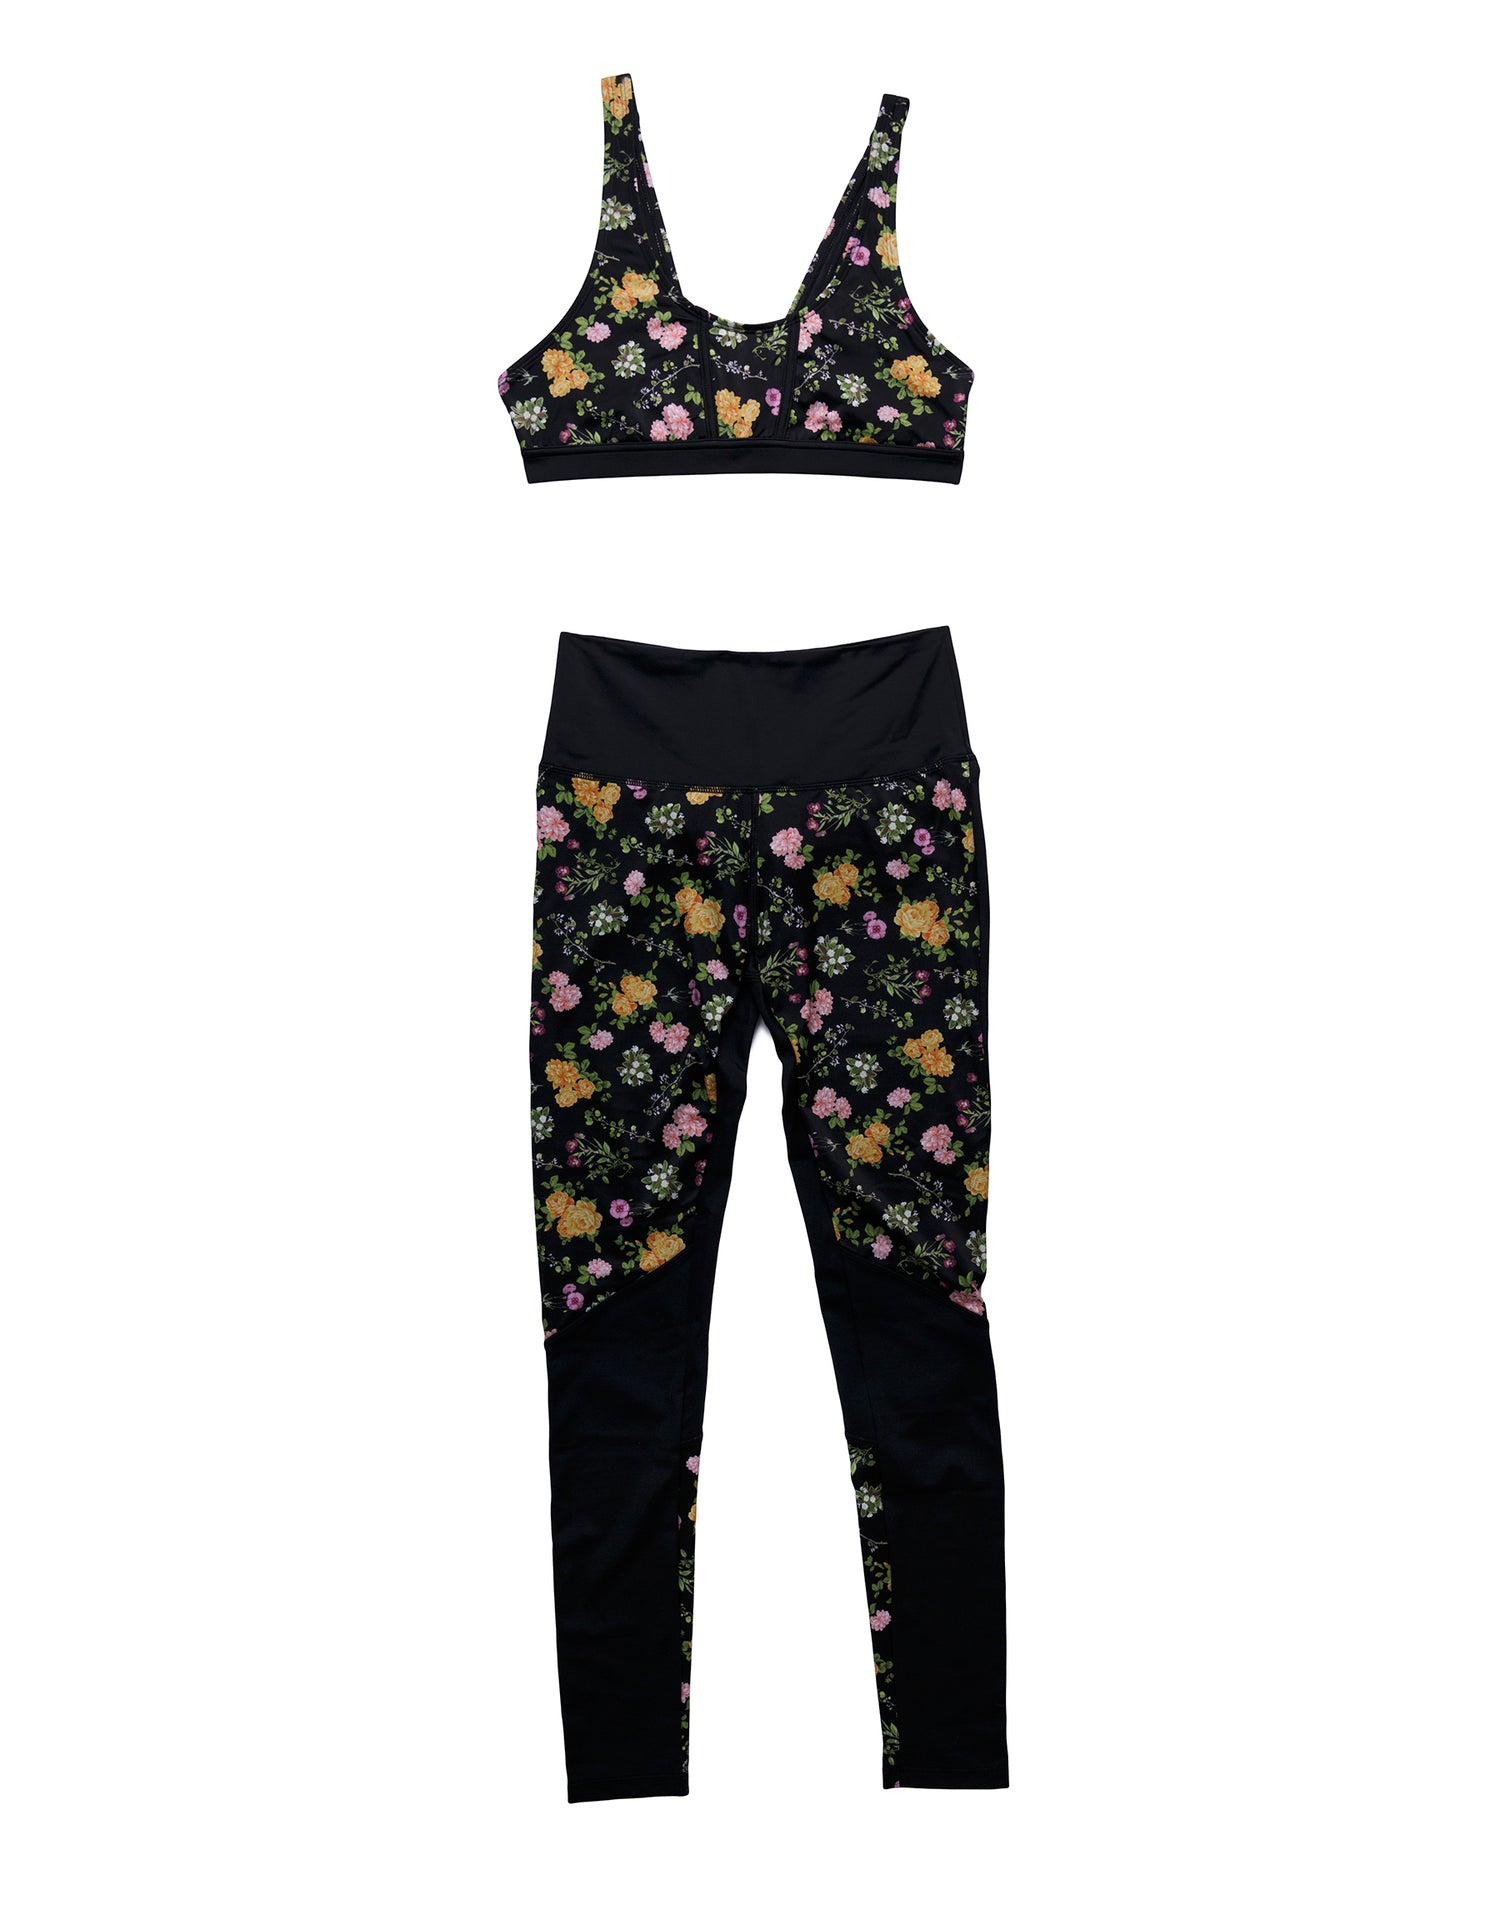 Riley Sports Bra in Black Floral - product view